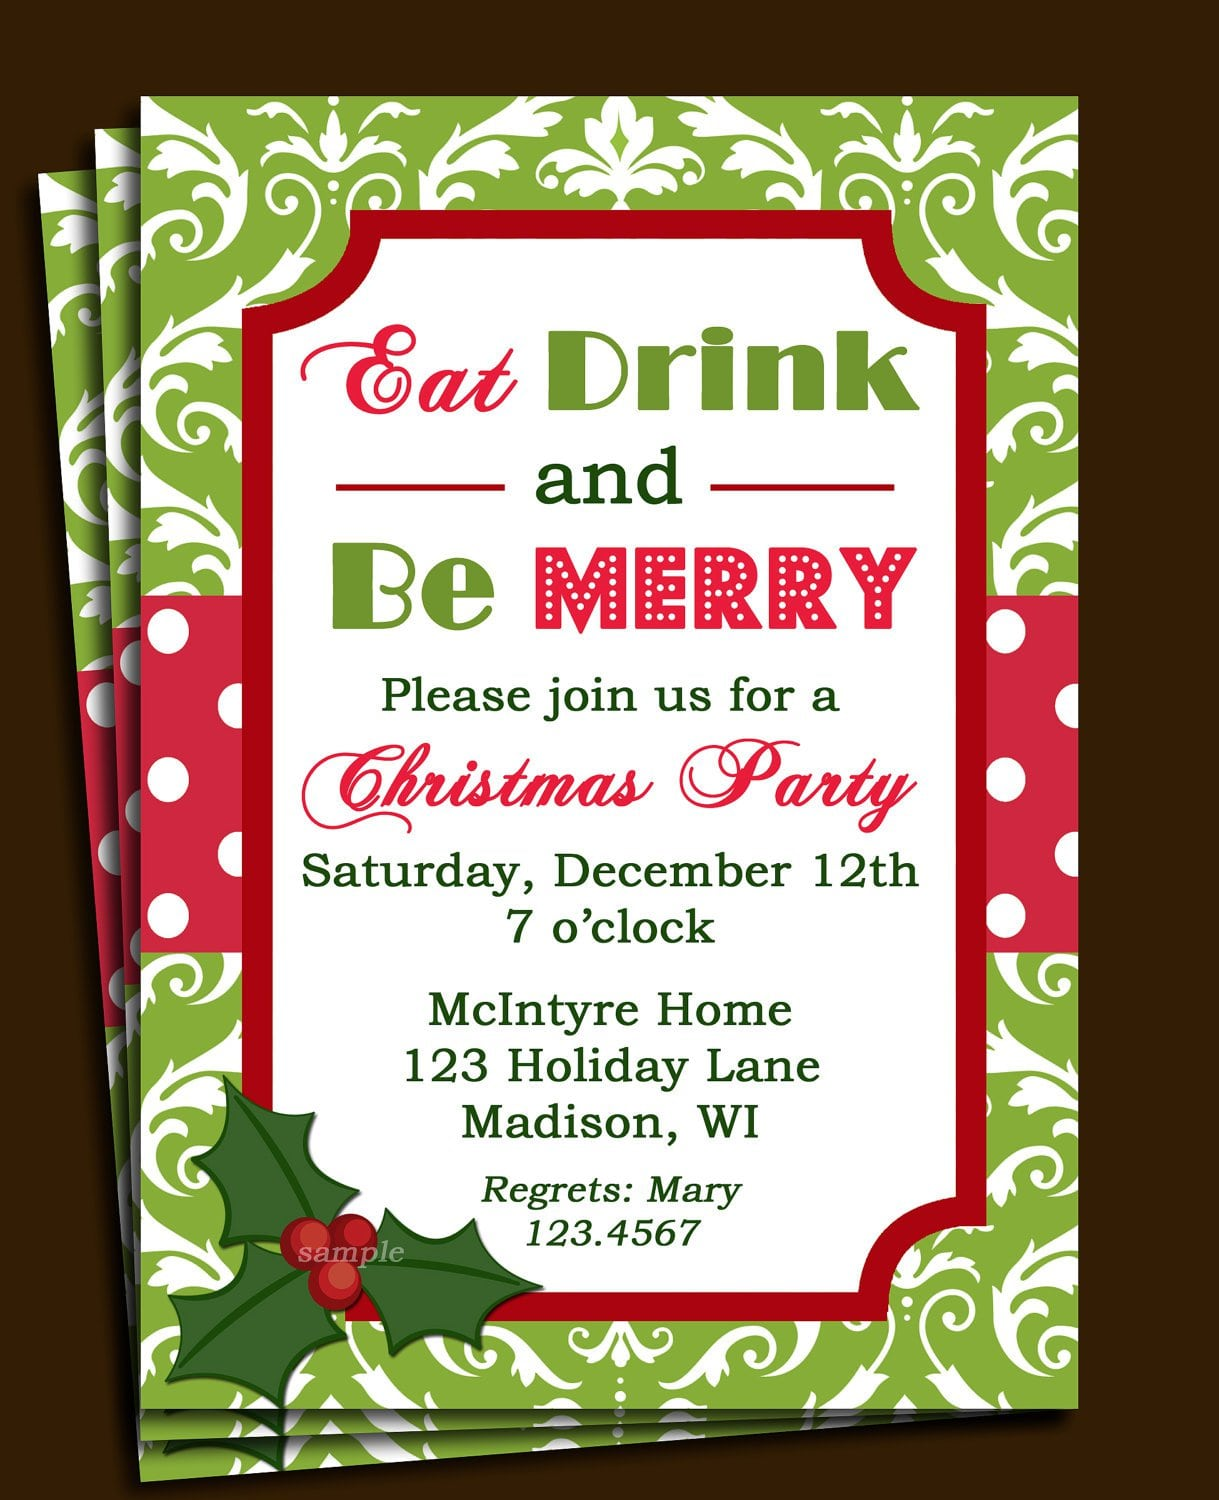 blog page 33 of 155 mickey mouse invitations templates items similar to christmas party invitation printable green damask · blog list · wedding backgrounds party invitation templates